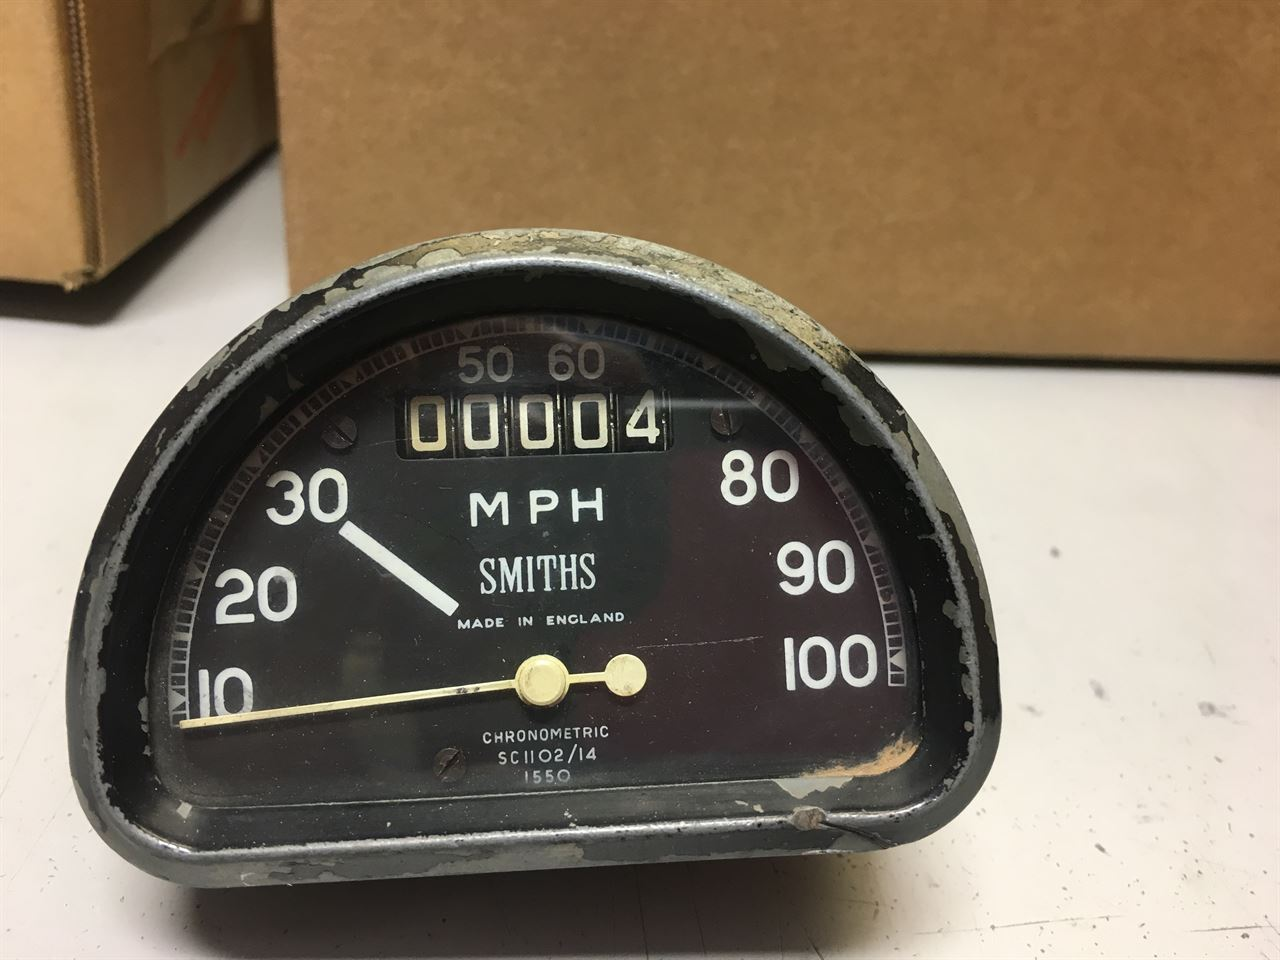 Picture of Smith Chronometric 0-100